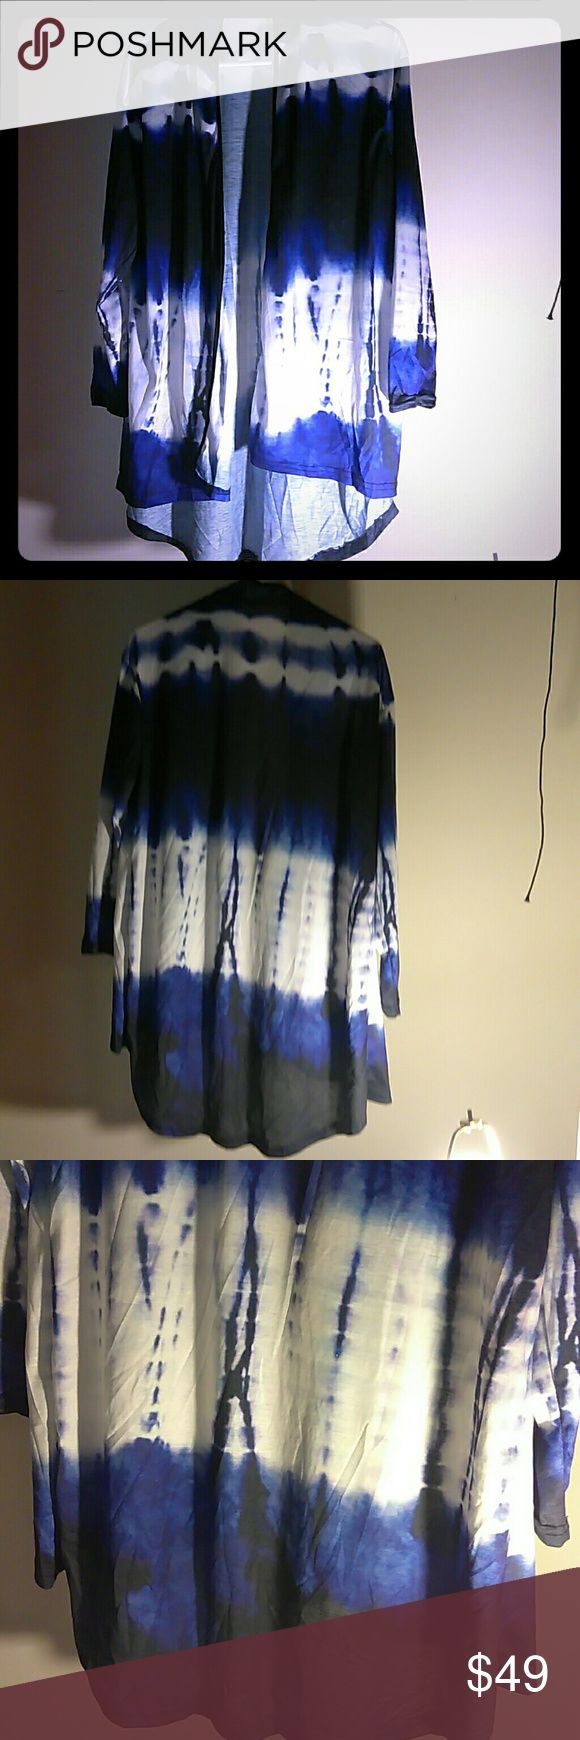 Tie dye hi-low cardigan Brand New never wornTie dye long sleeve stretch casual/dinner/party cardigan & Other Stories Sweaters Cardigans